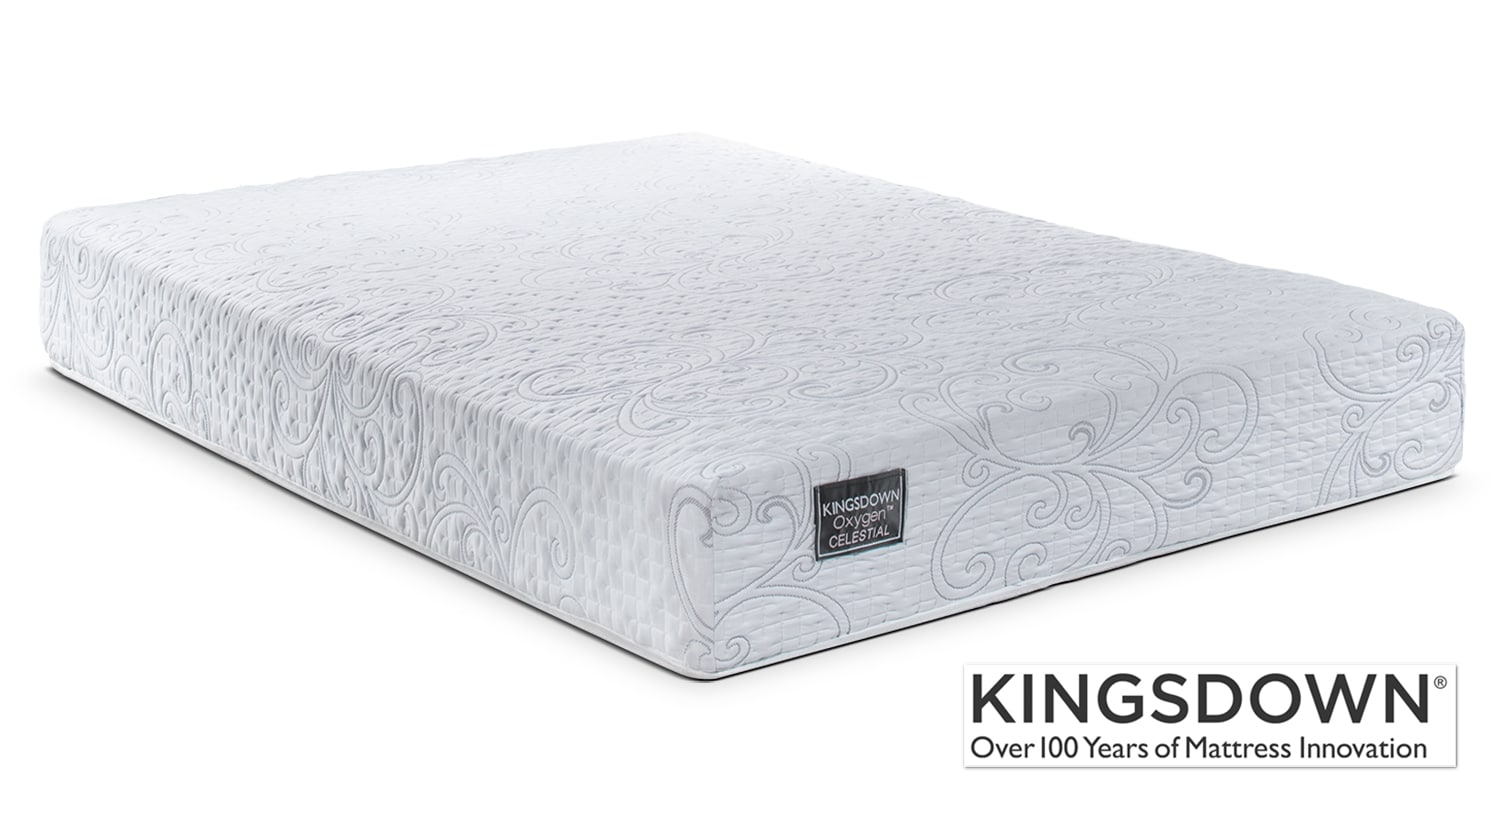 Kingsdown Celestial King Mattress